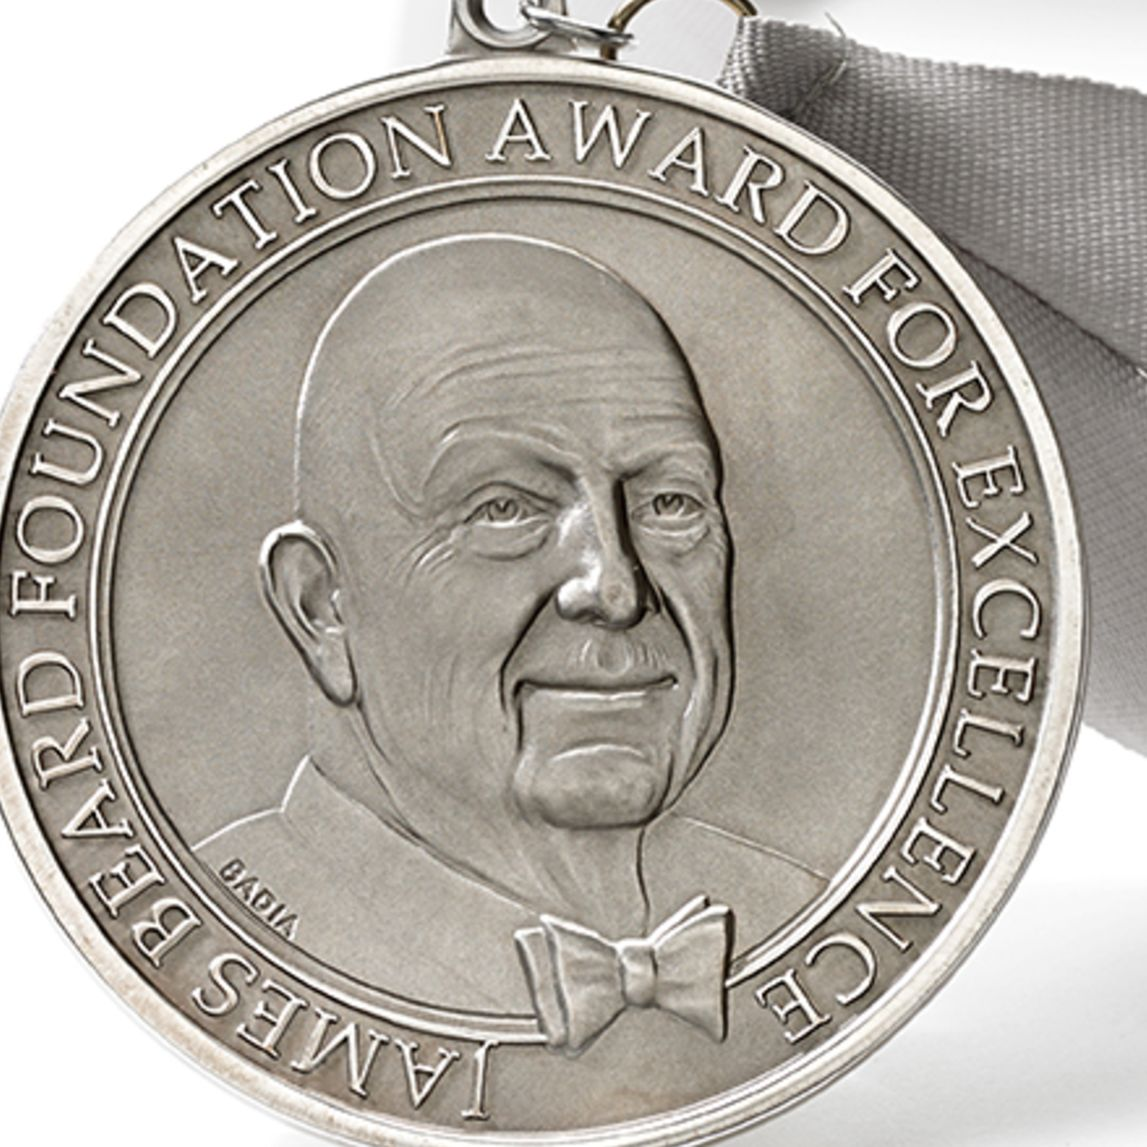 James beard award medal tsvai6